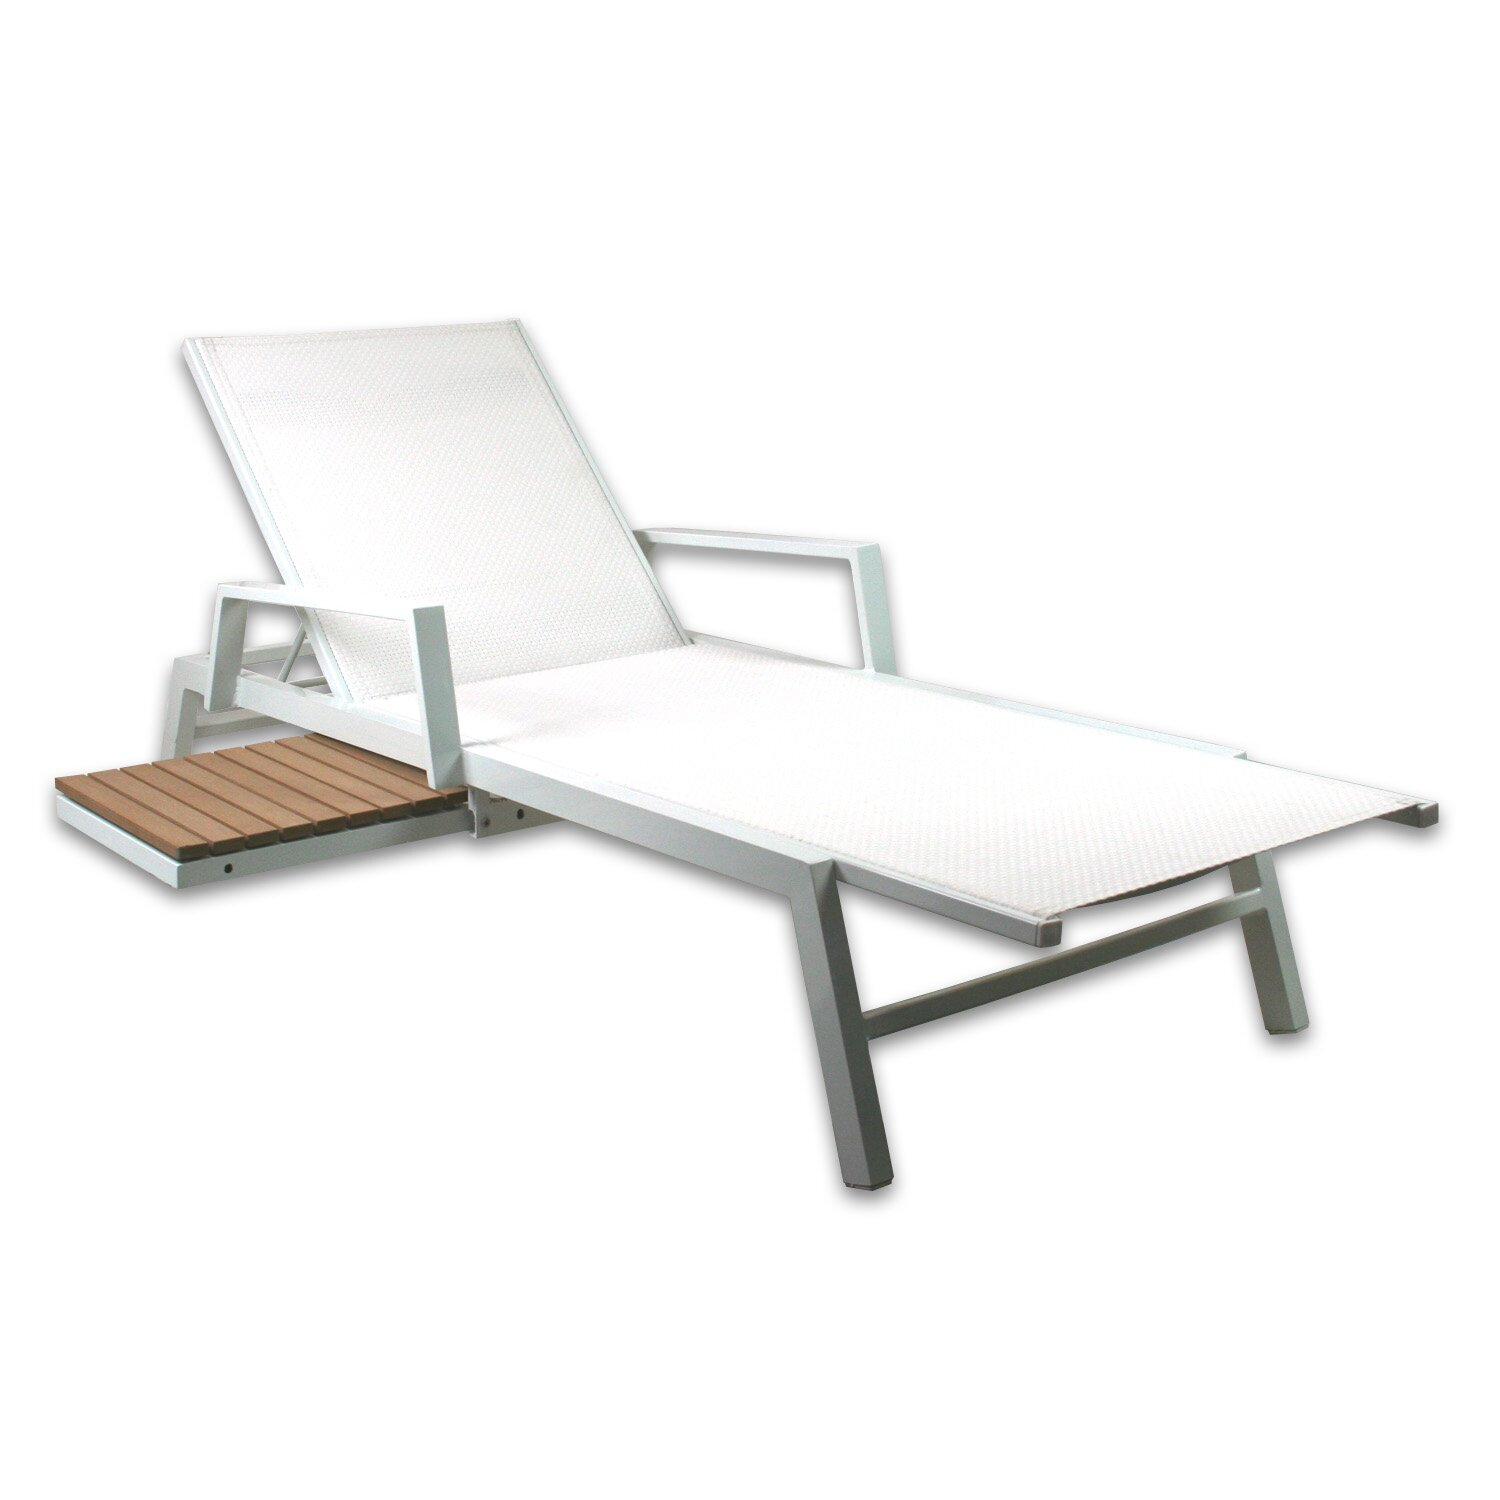 Patio Heaven Riviera Chaise Lounge & Reviews